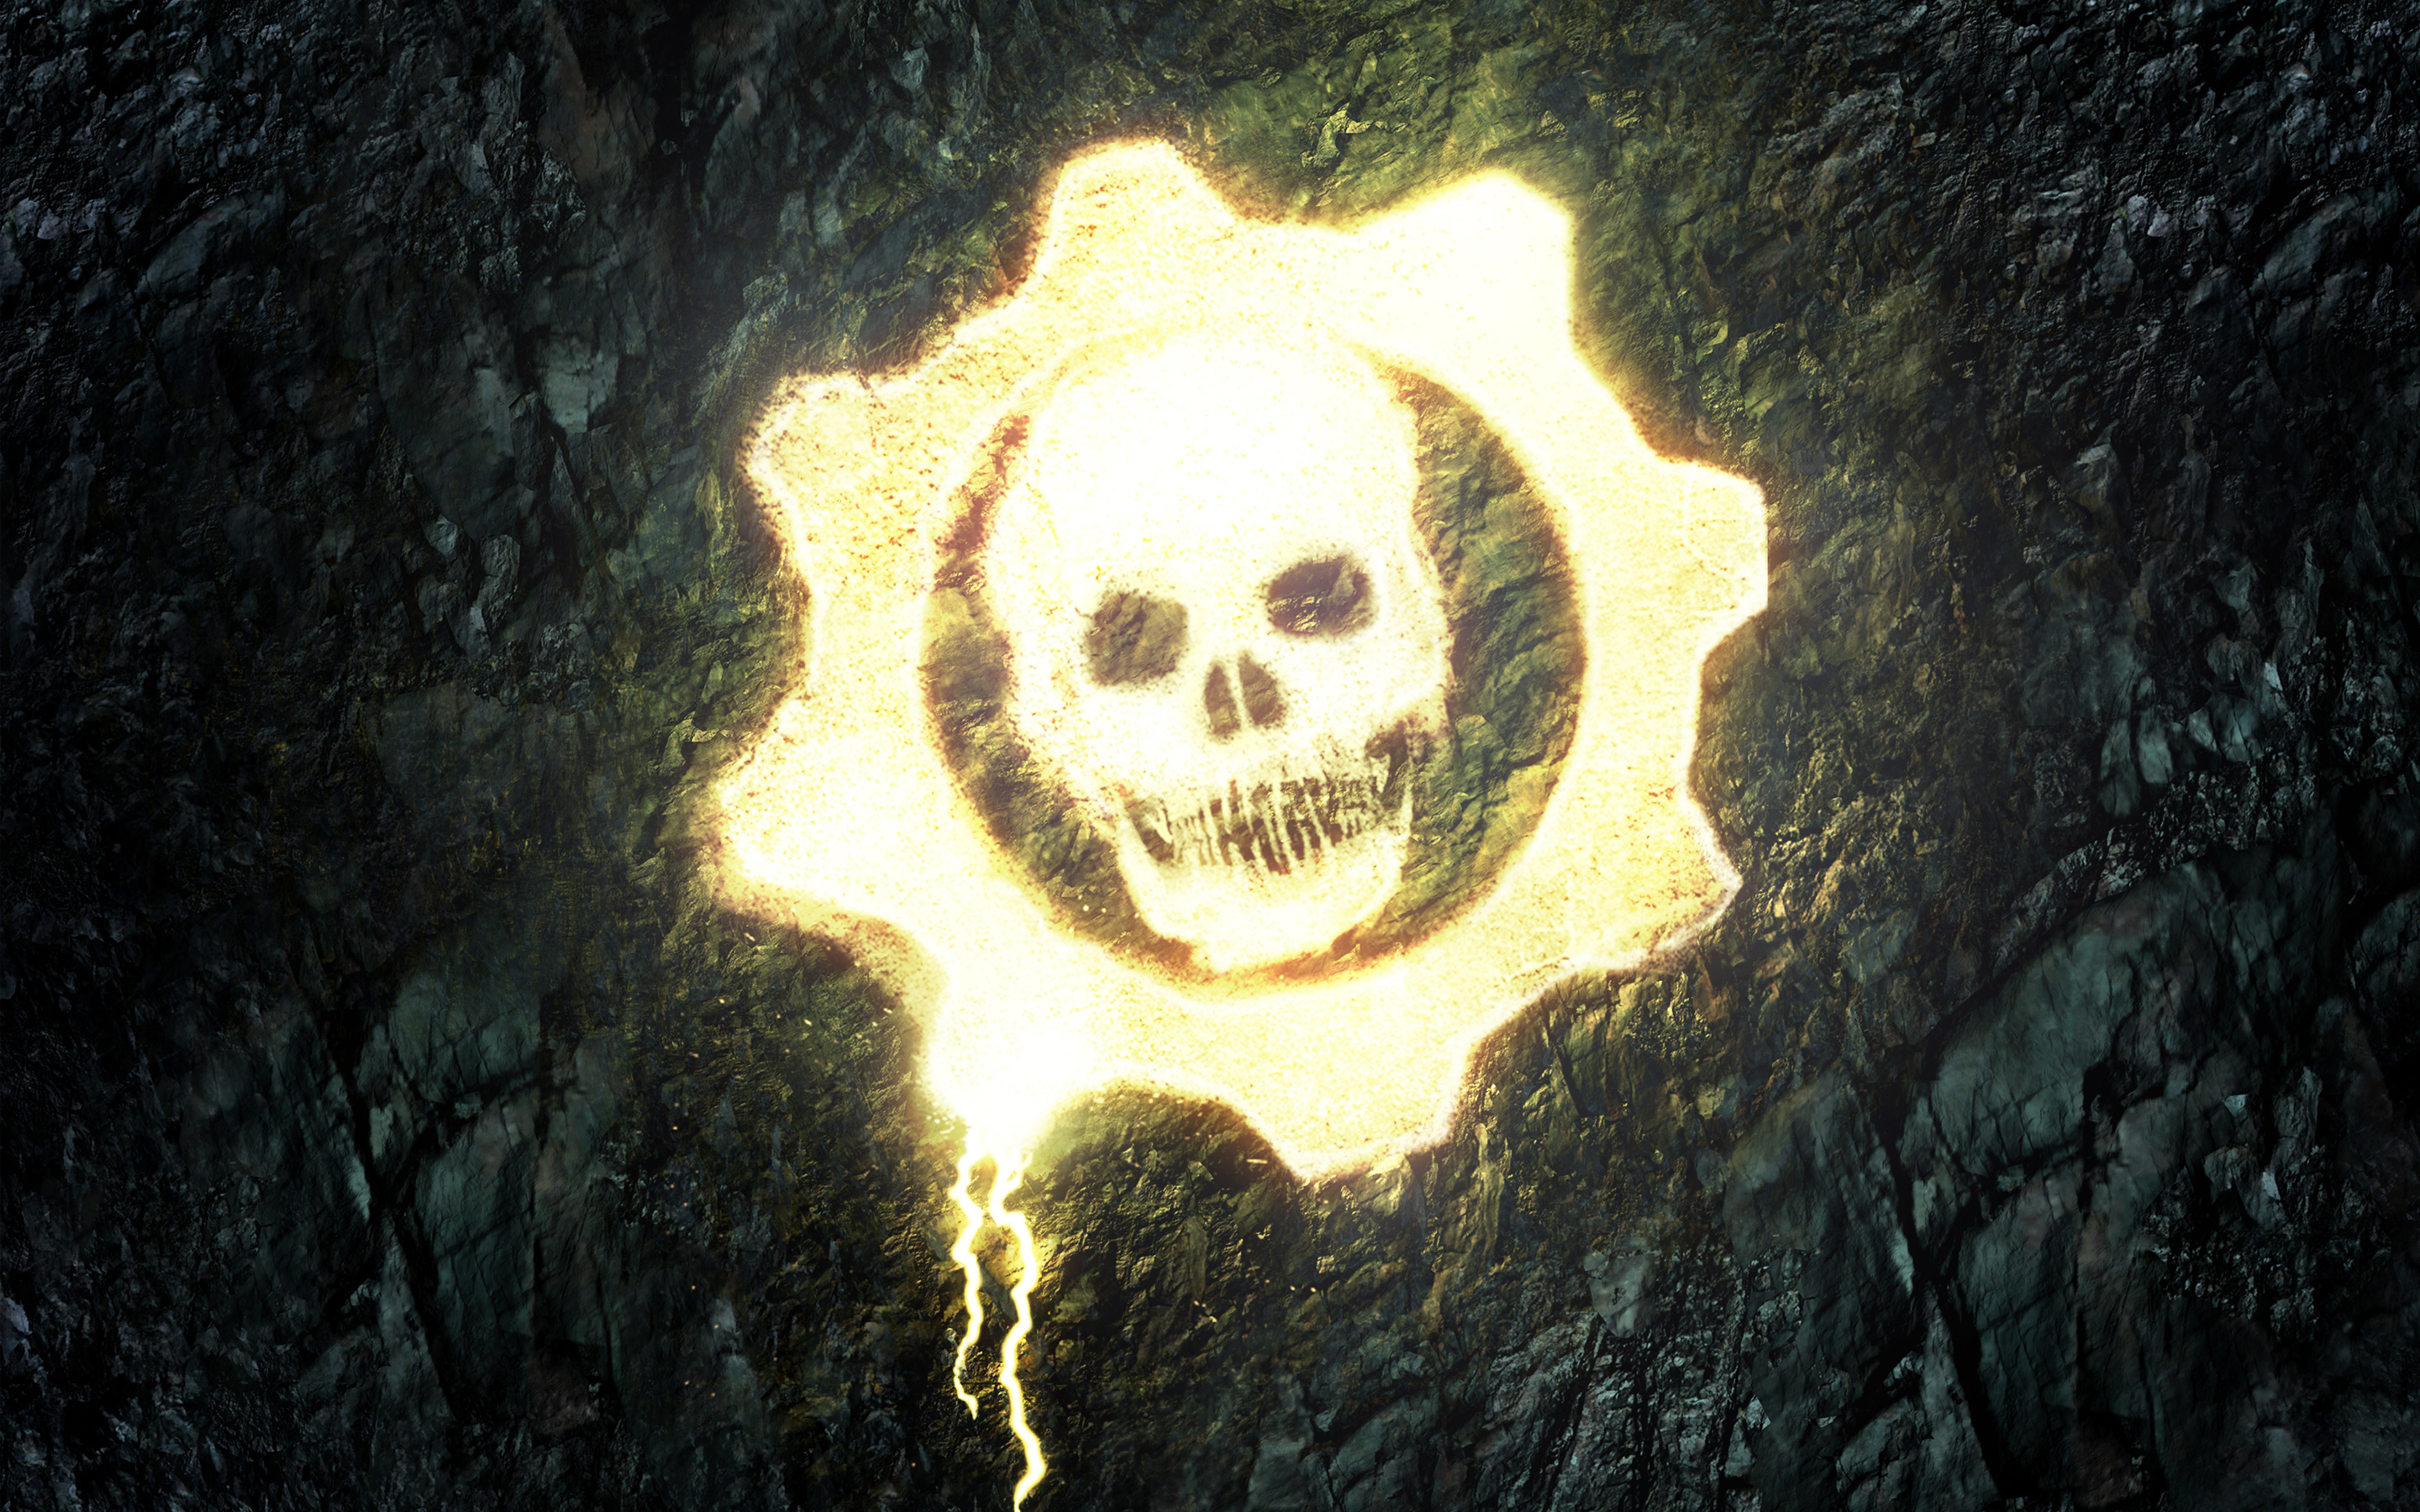 Free Download Gears Of War Skull Hd Wallpapers 2880x1800 For